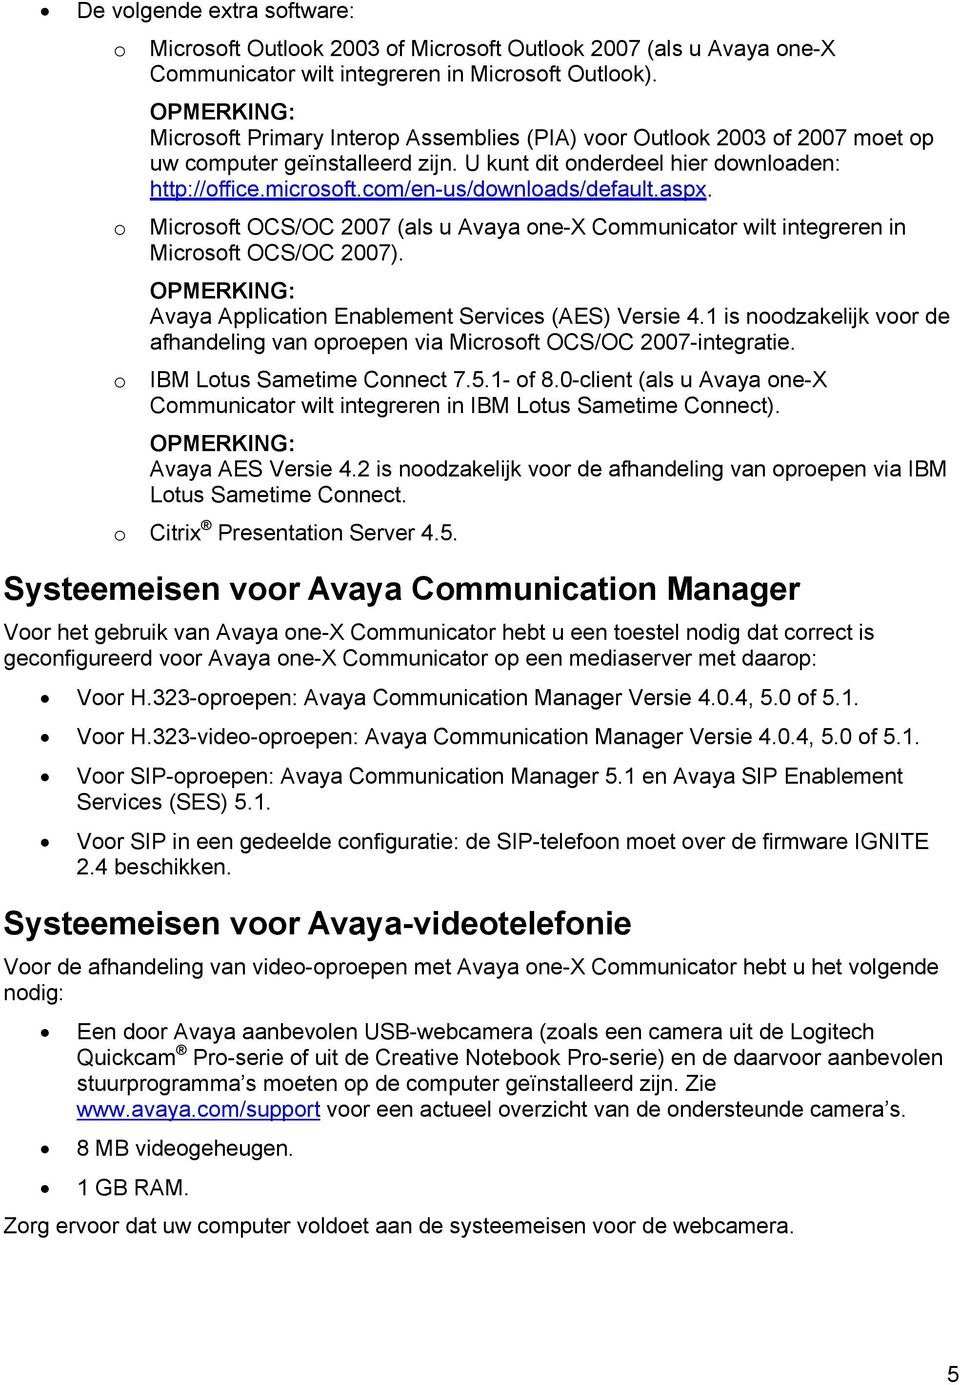 aspx. Microsoft OCS/OC 2007 (als u Avaya one-x Communicator wilt integreren in Microsoft OCS/OC 2007). Avaya Application Enablement Services (AES) Versie 4.